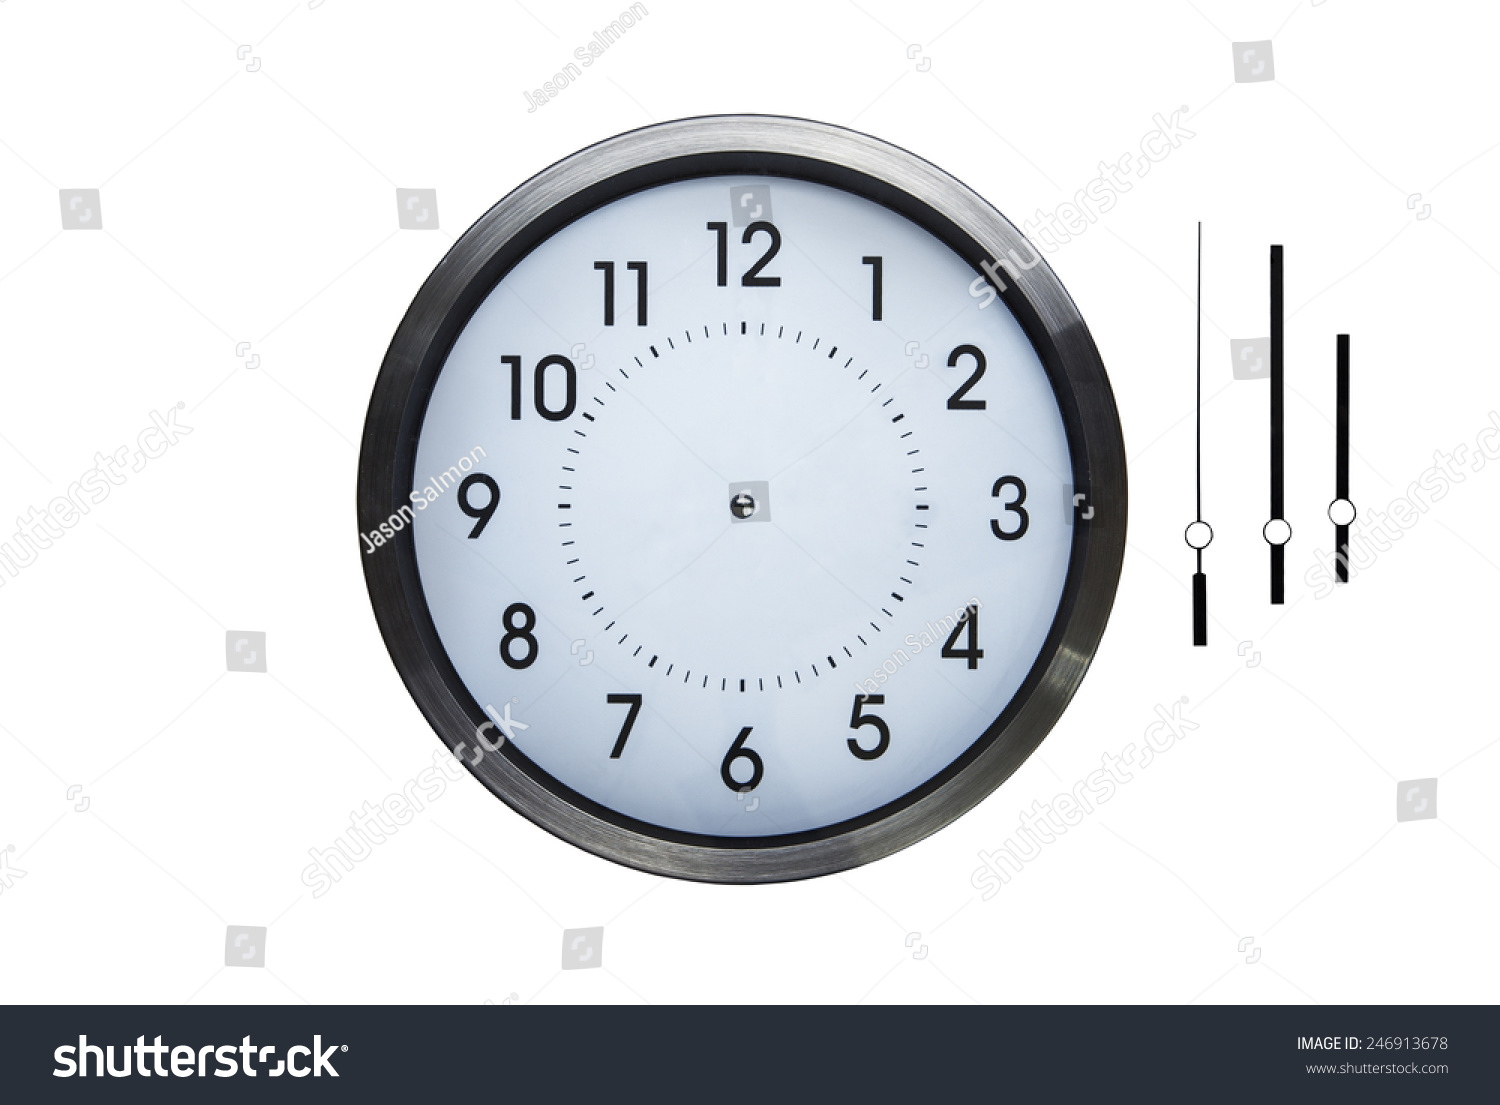 Clock Without Hands Images Stock Photos amp Vectors